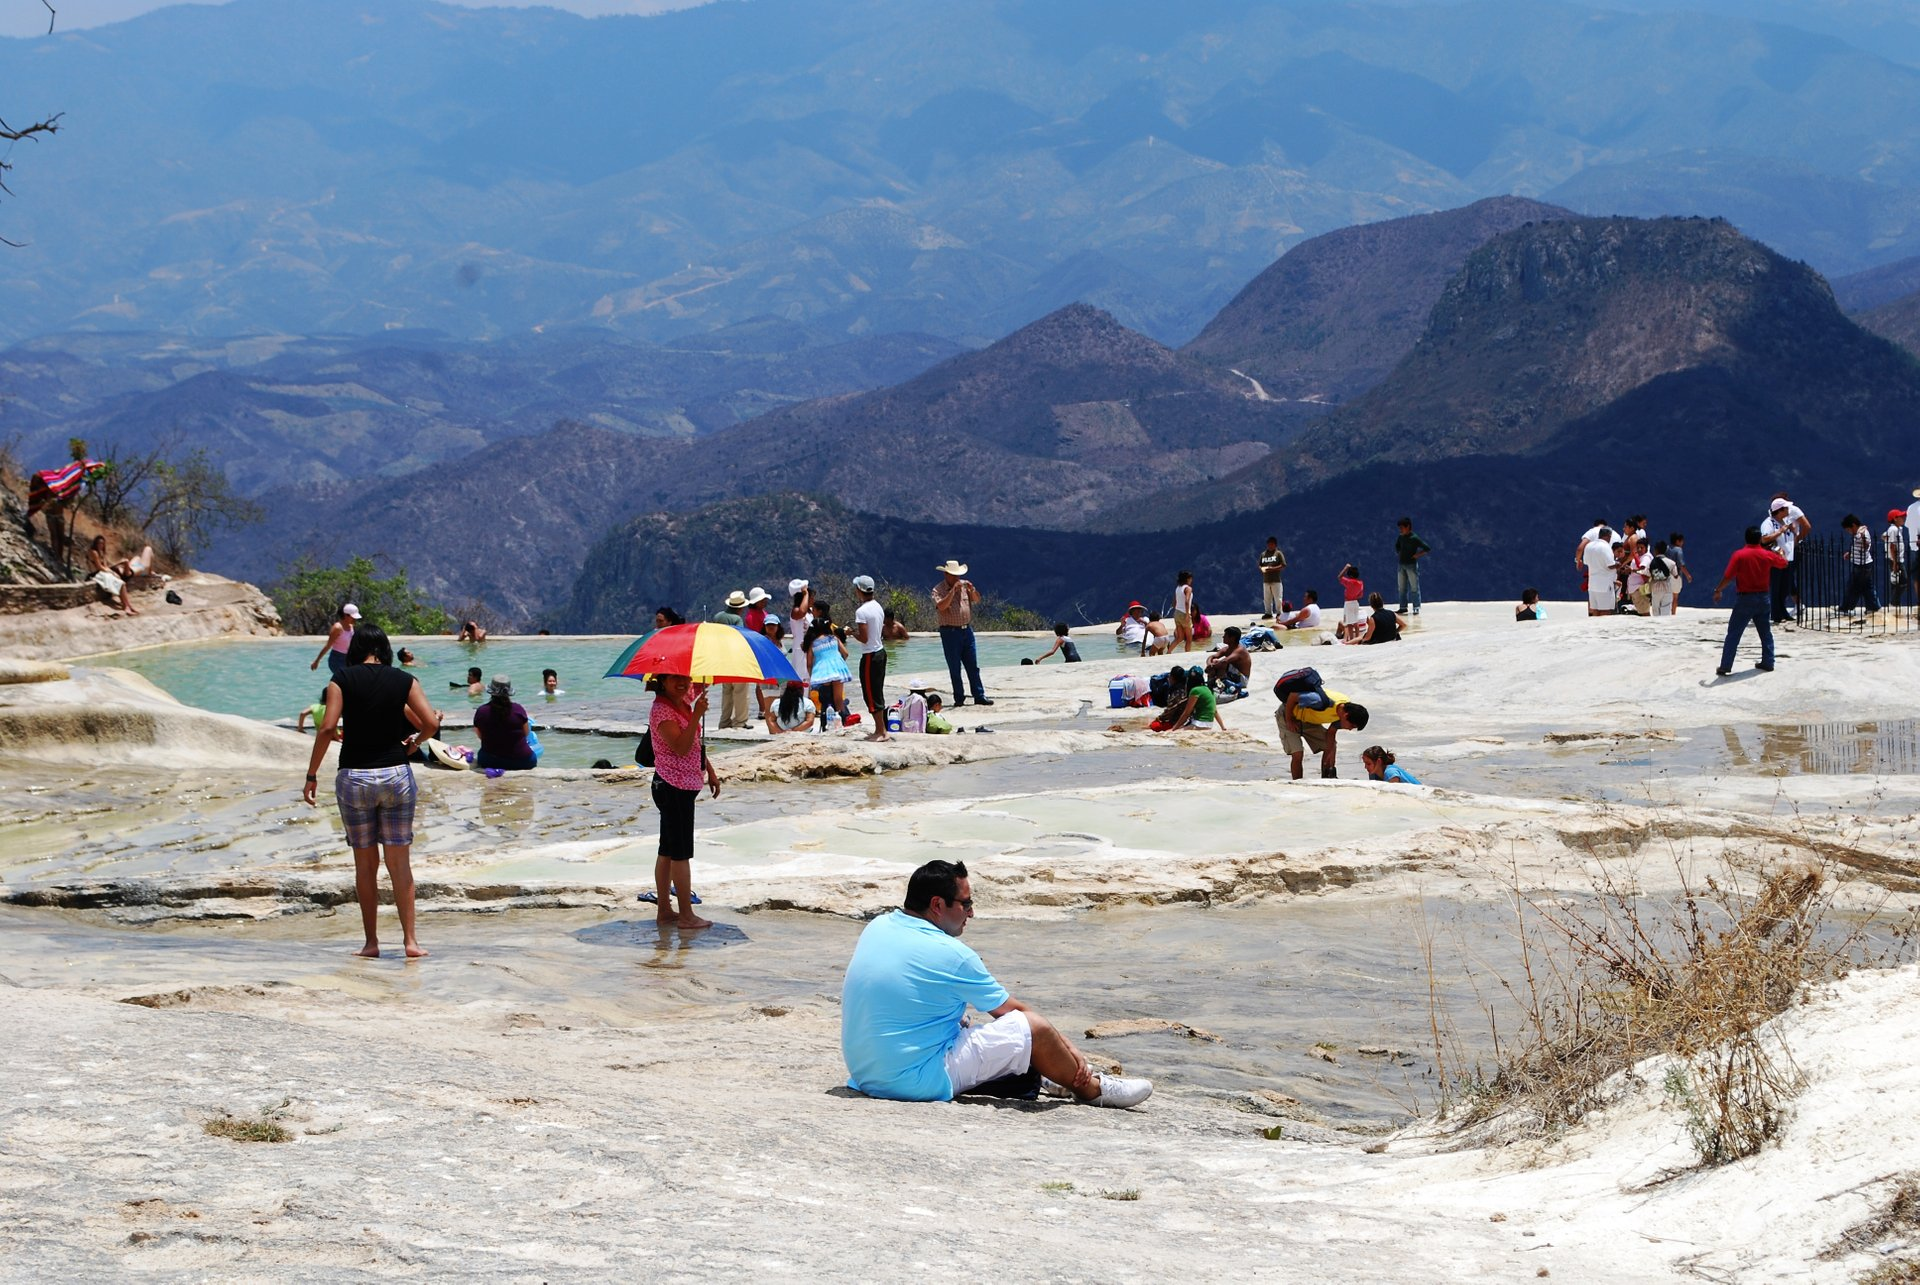 Lower natural and artificial pools at Hierve el Agua, Oaxaca, Mexico 2020